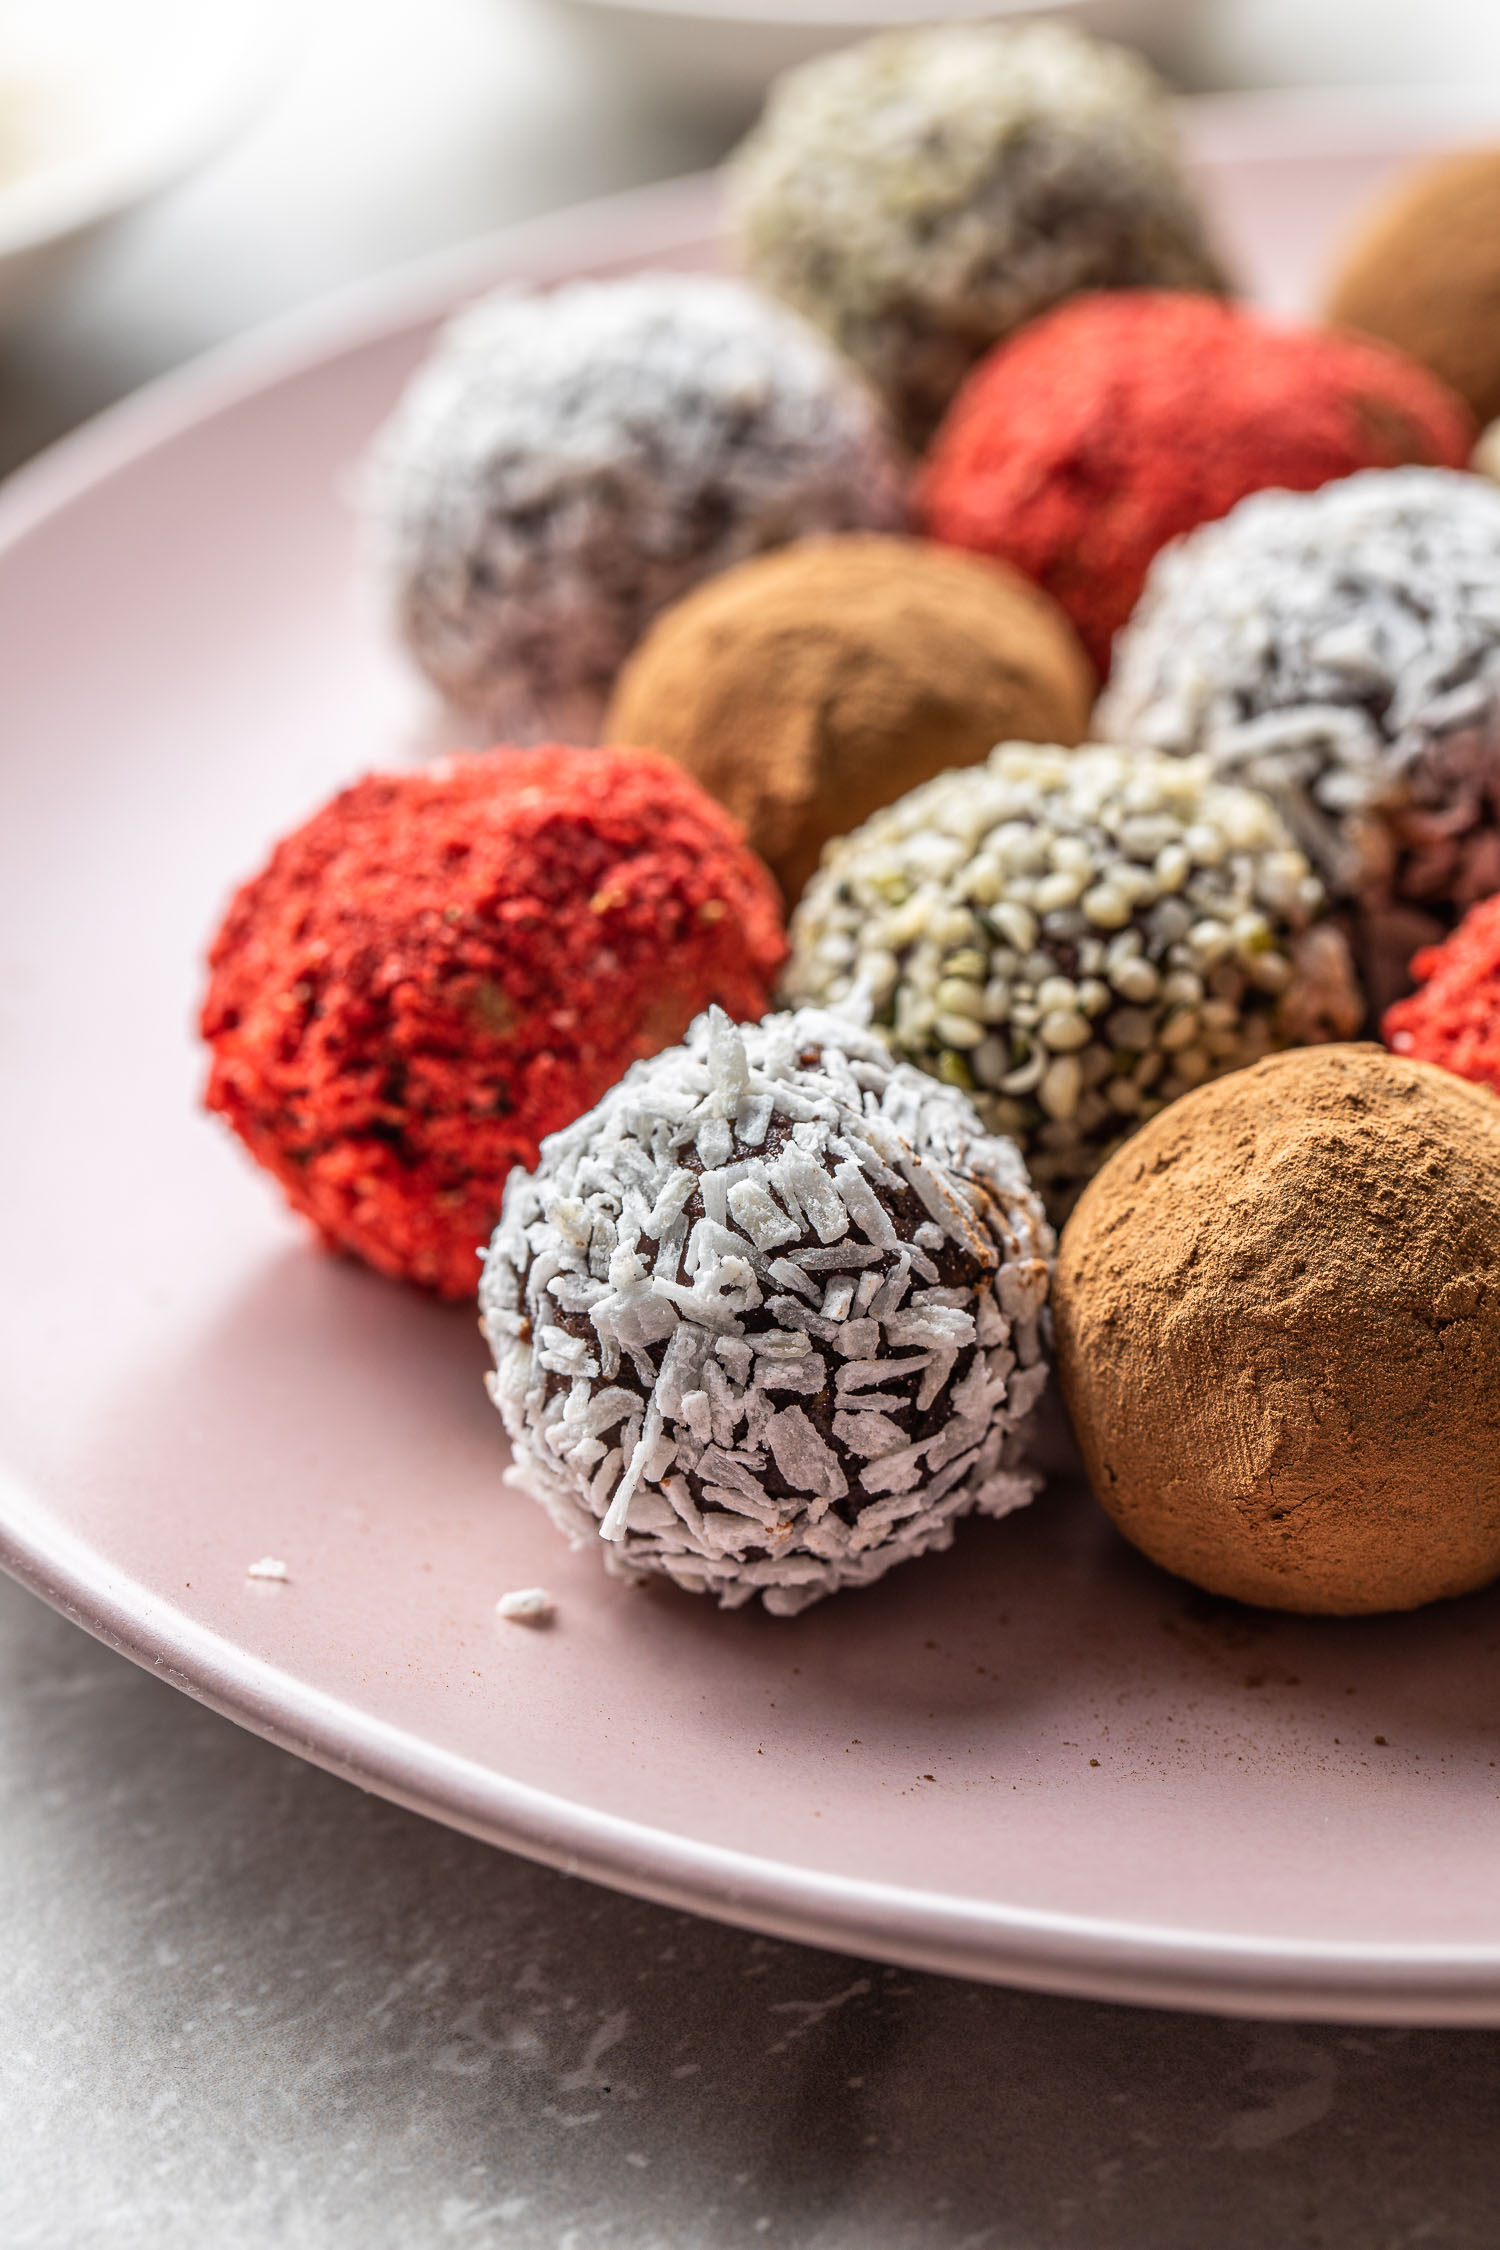 vegan chocolate truffle candy recipe. truffles coated in red strawberry crumbs, white coconut flakes, brown cocoa or cacao powder, and earthy colored hemp seeds on a pale pink dessert plate